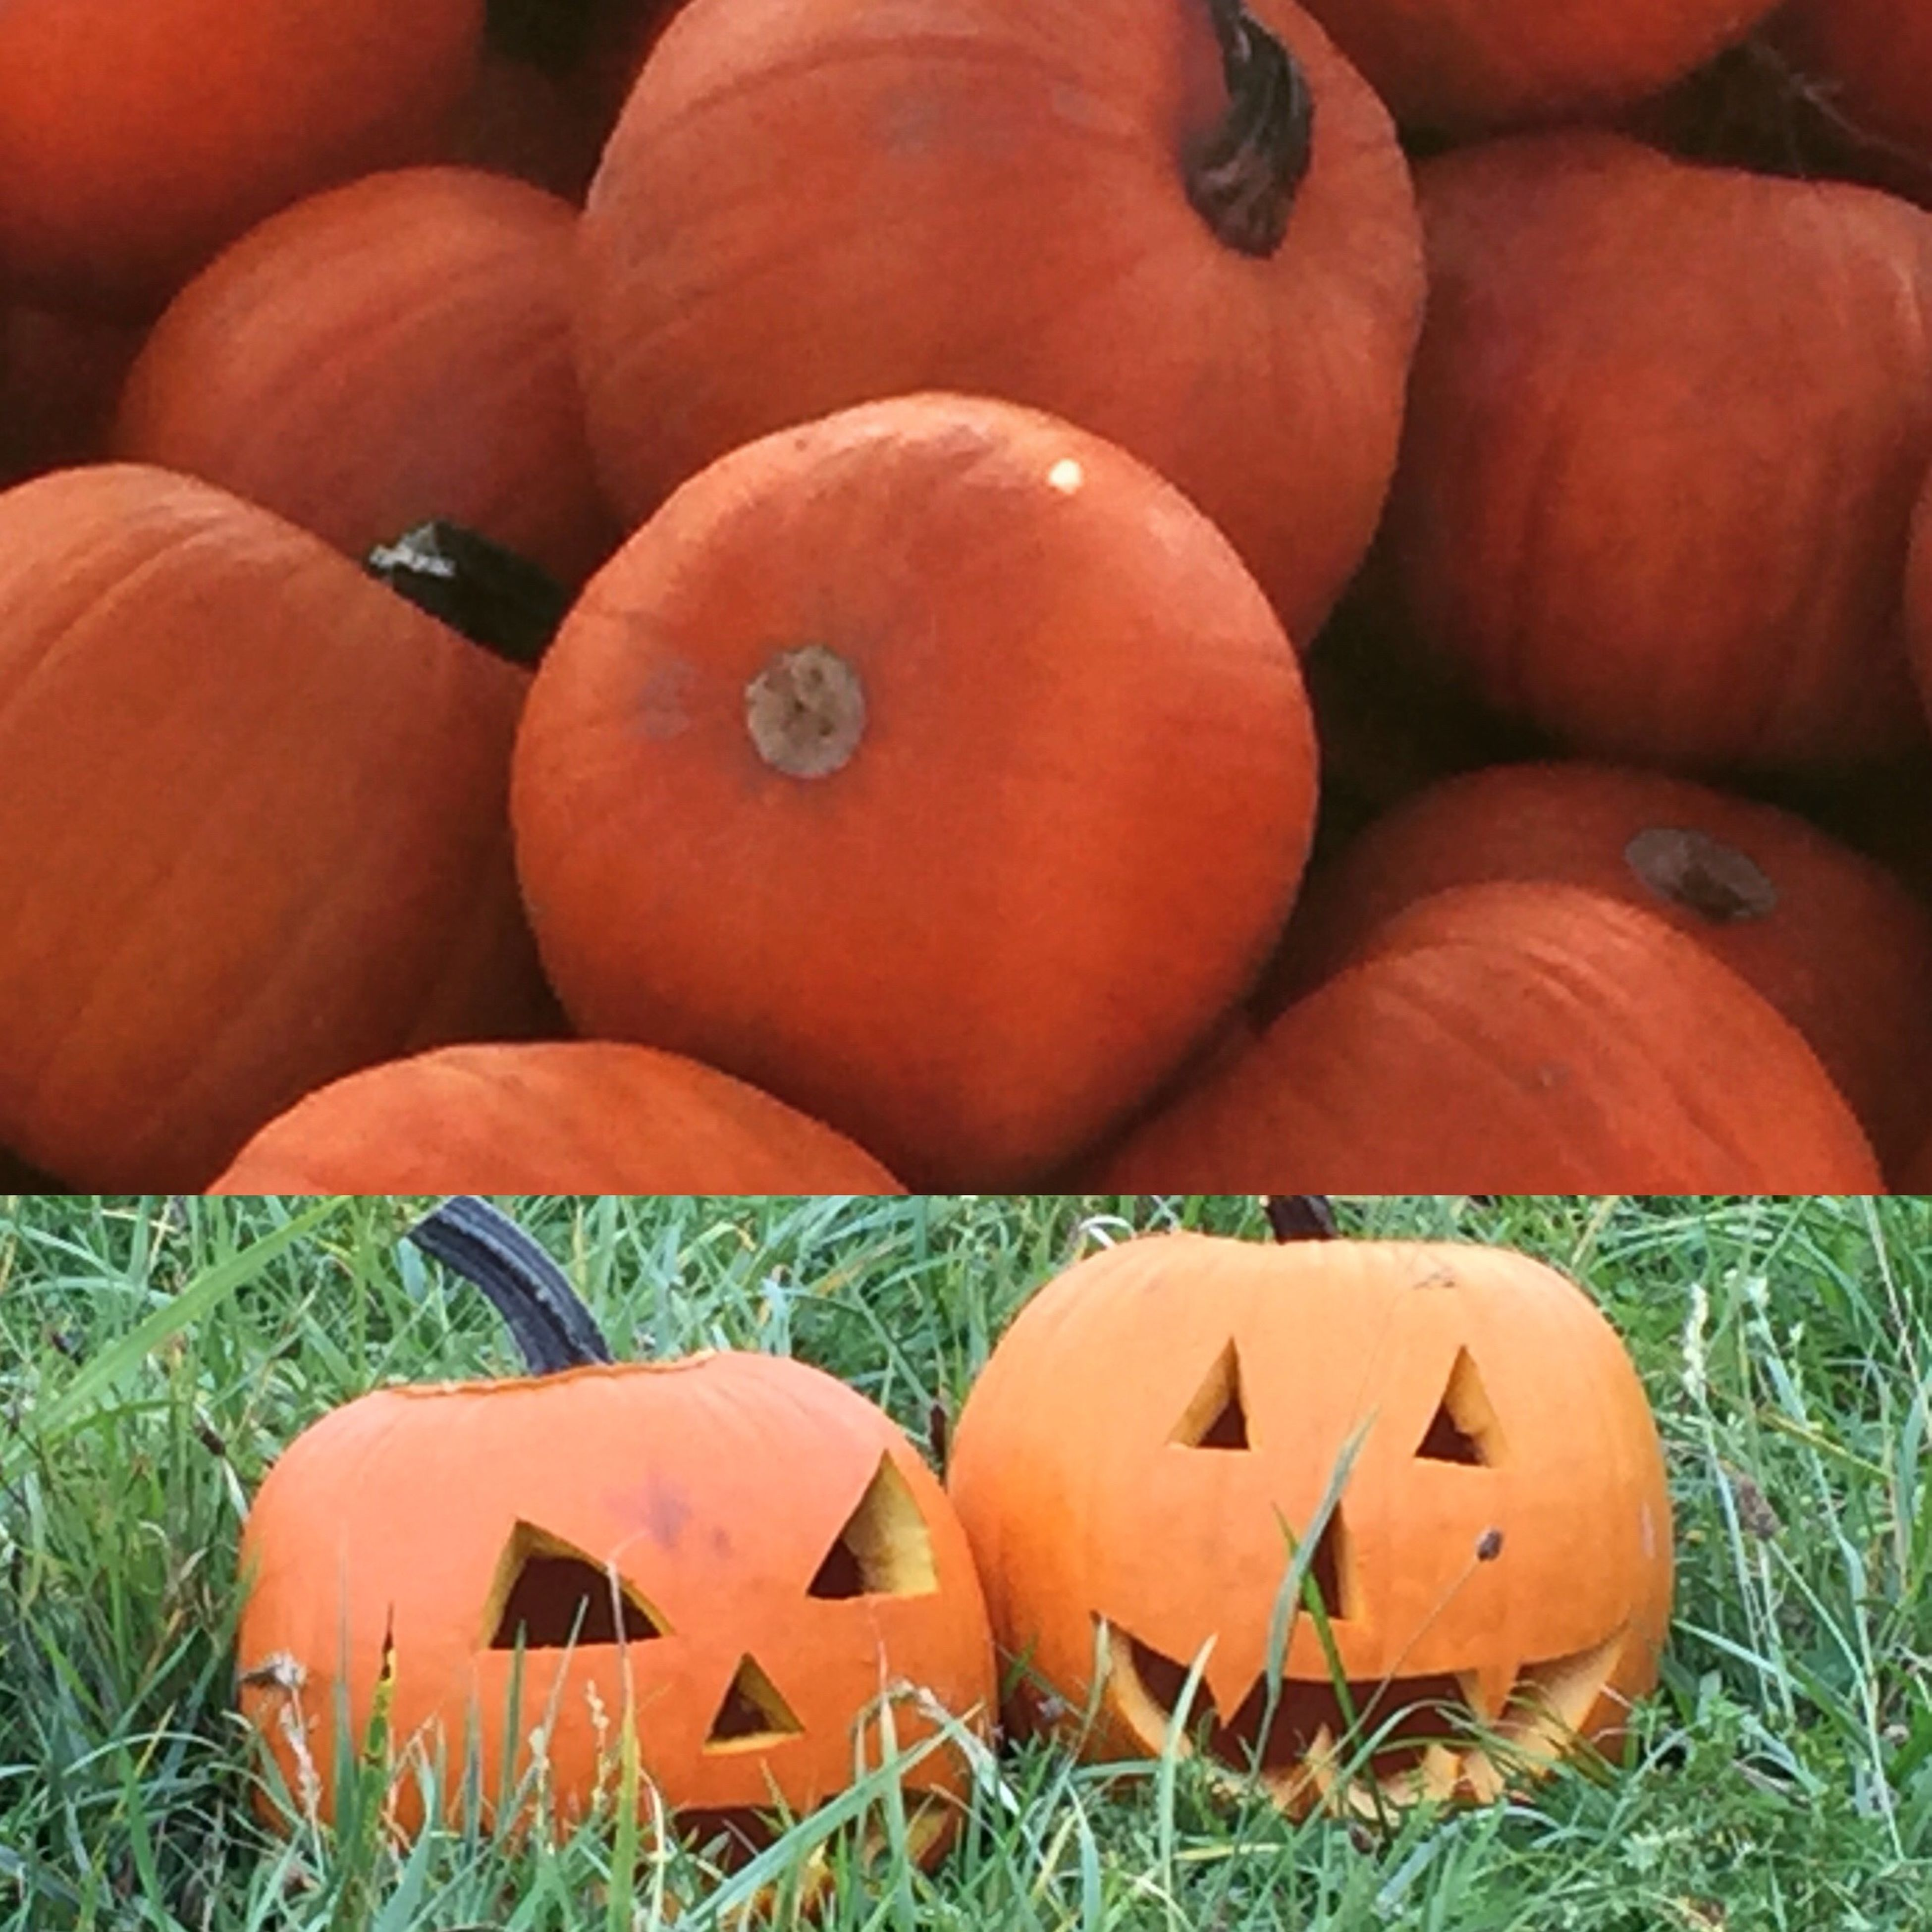 pumpkin, field, grass, orange color, no people, wood - material, close-up, halloween, outdoors, large group of objects, still life, day, tradition, group of objects, vegetable, anthropomorphic face, abandoned, variation, cultures, nature